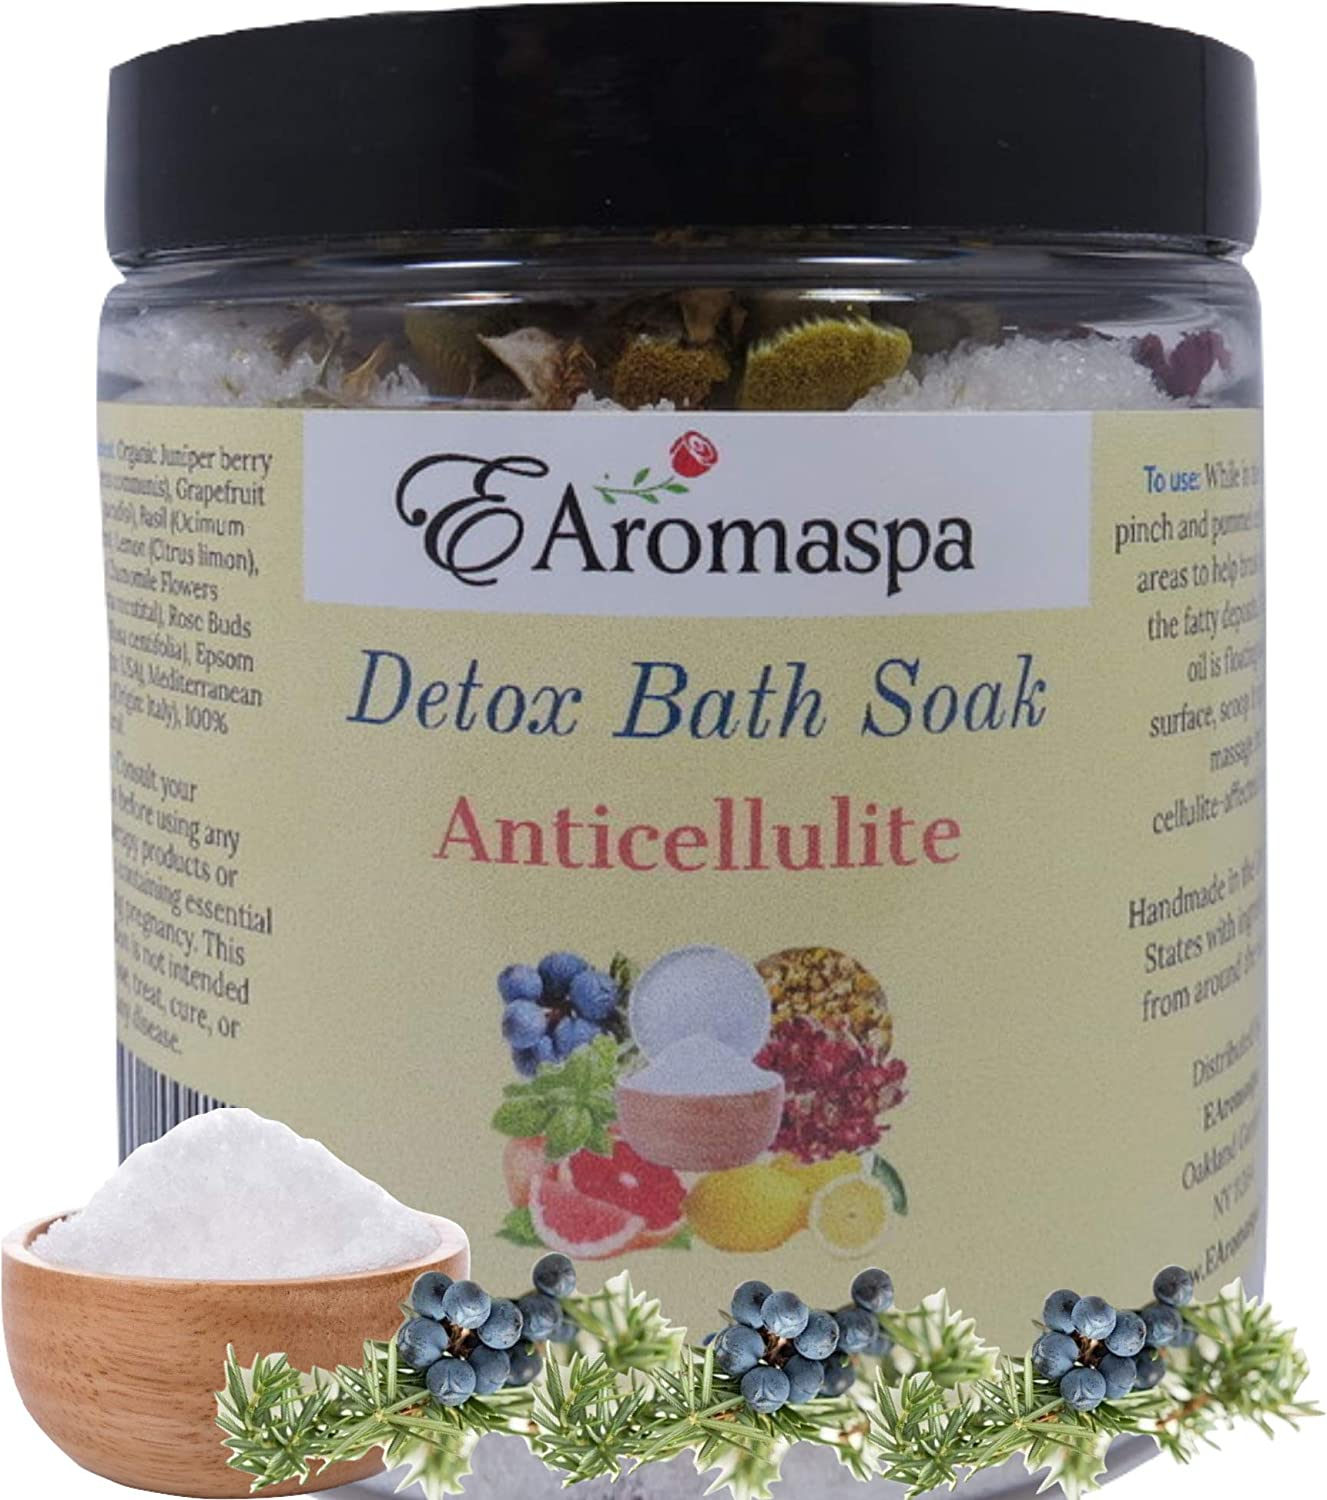 EAromaspa Anti Cellulite Detox Bath Soak for Body Cleanse, Toxin, Slim Down Soak, Bath Salts, Bath Soak with Organic Juniper Berry Essential Oils, Natural Celulitis Treatment 8oz